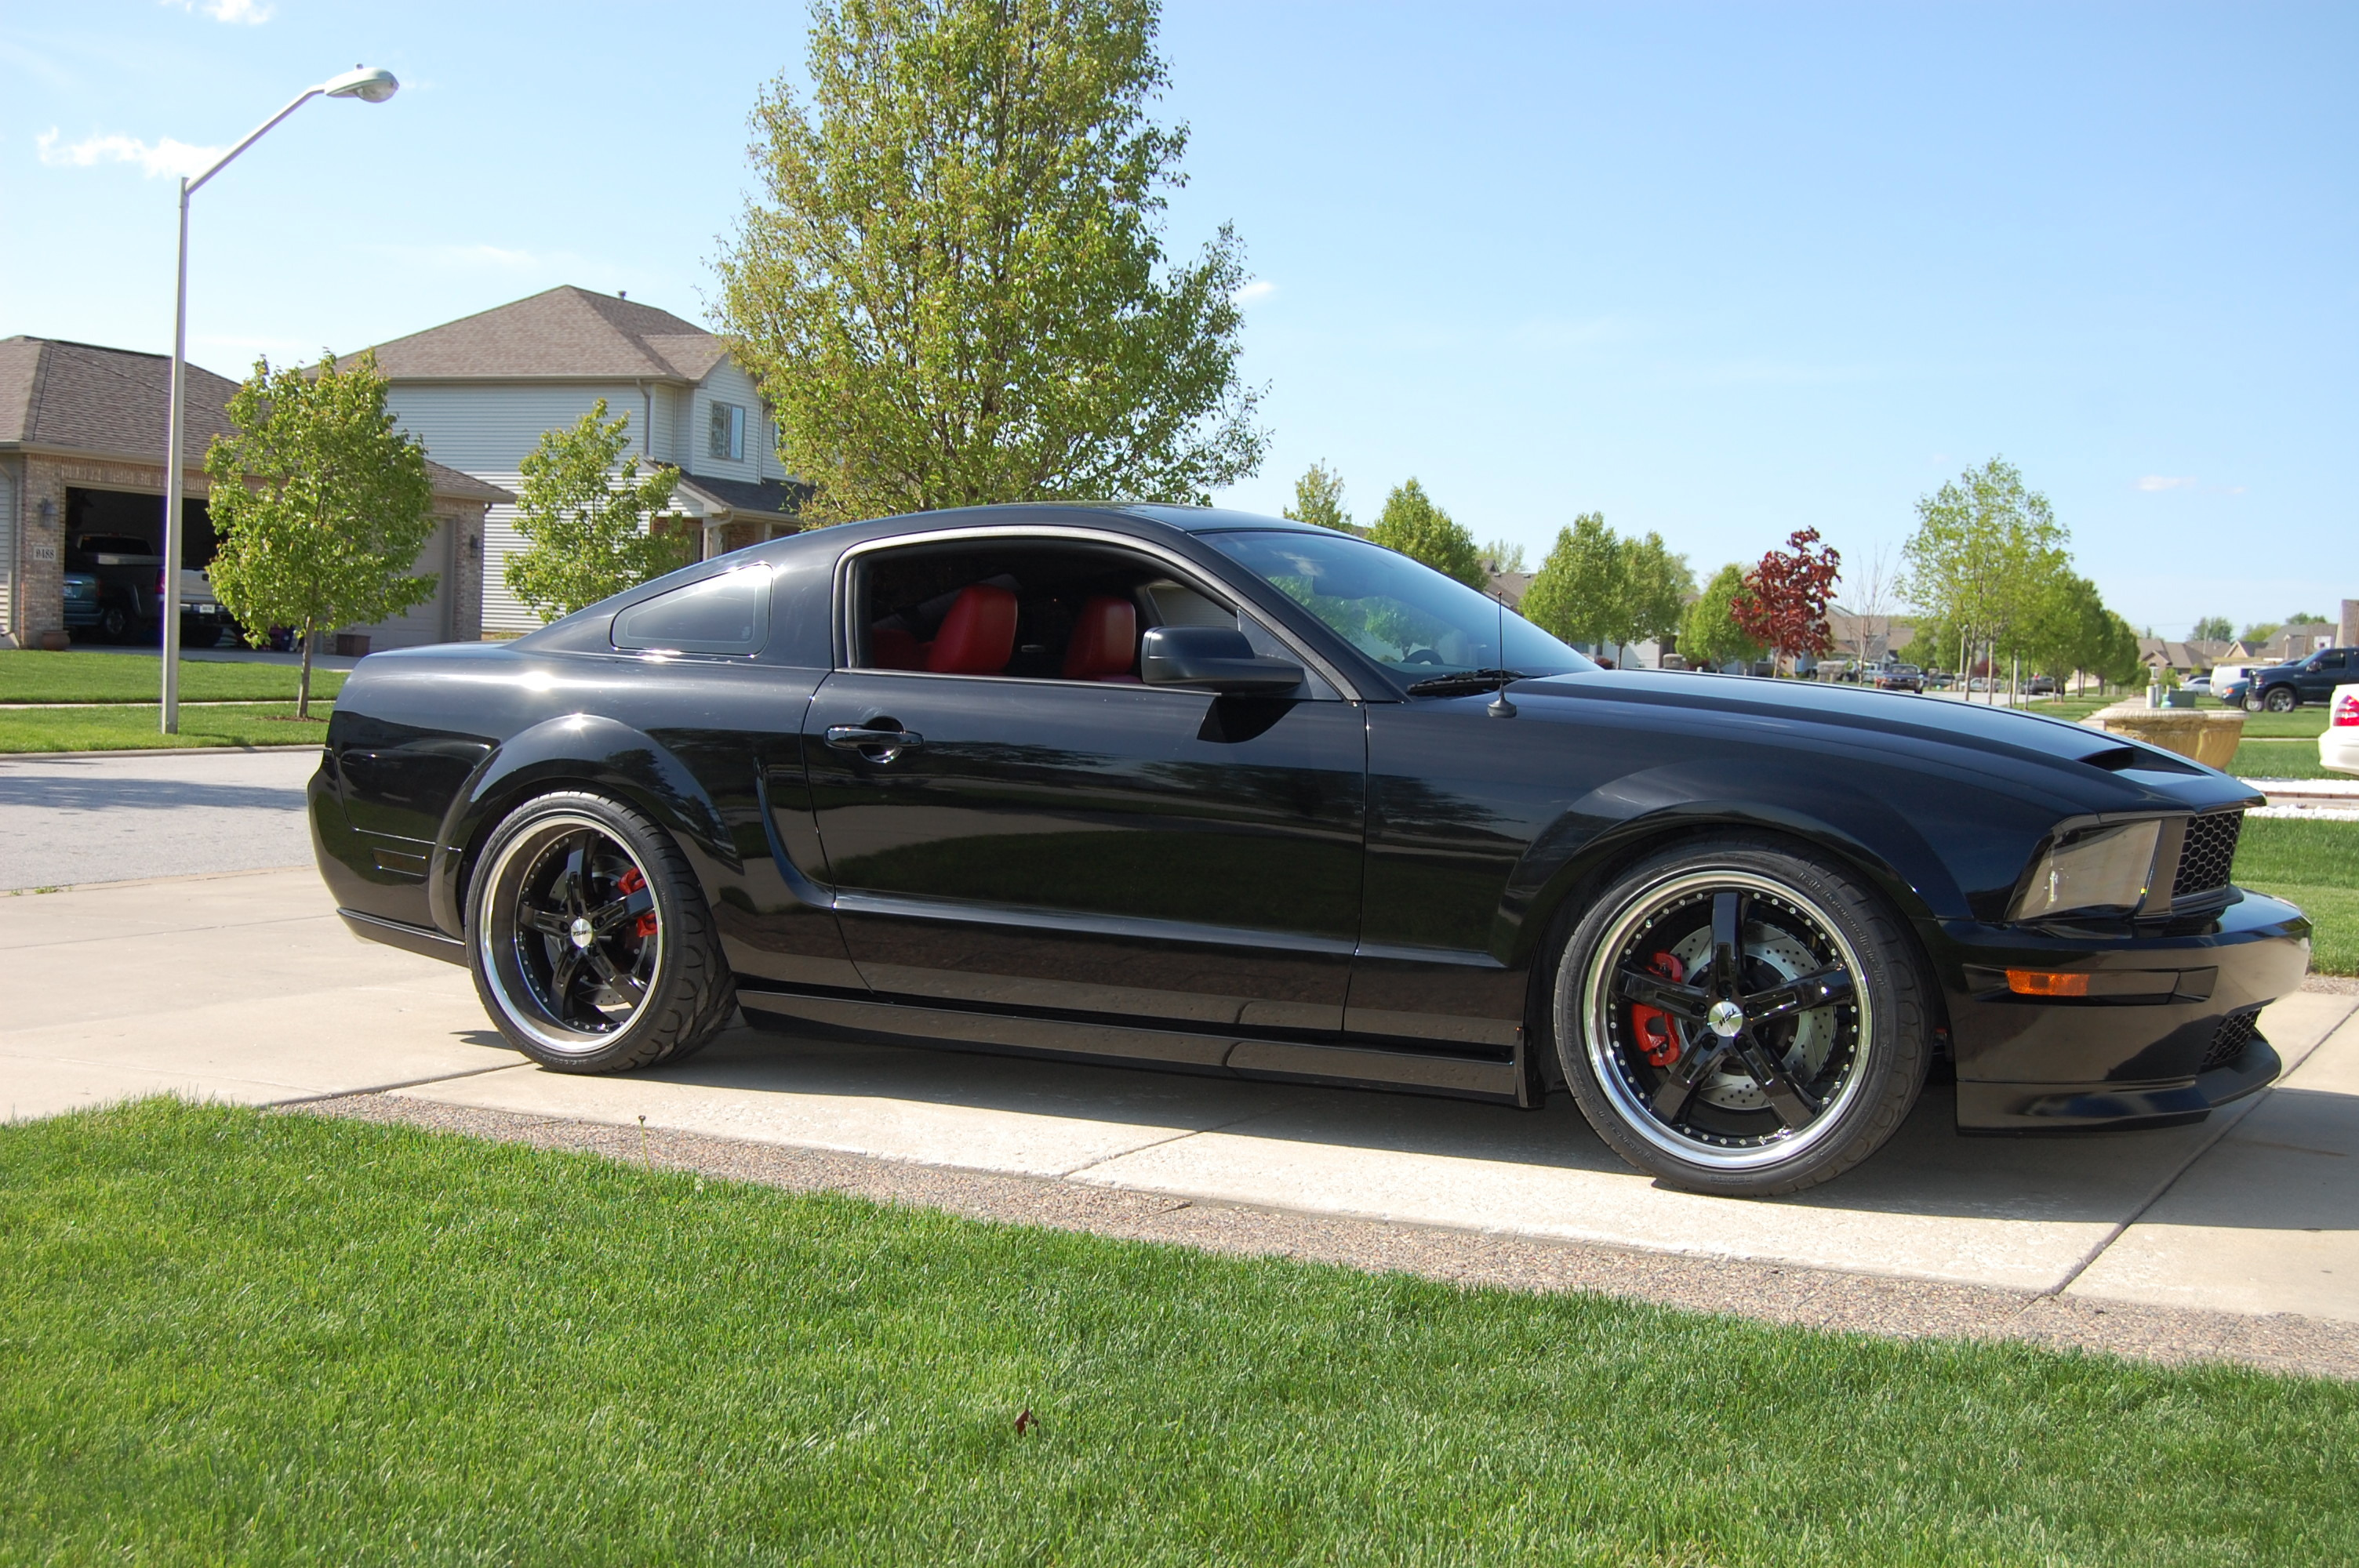 gt420 2008 ford mustang specs photos modification info at cardomain. Black Bedroom Furniture Sets. Home Design Ideas